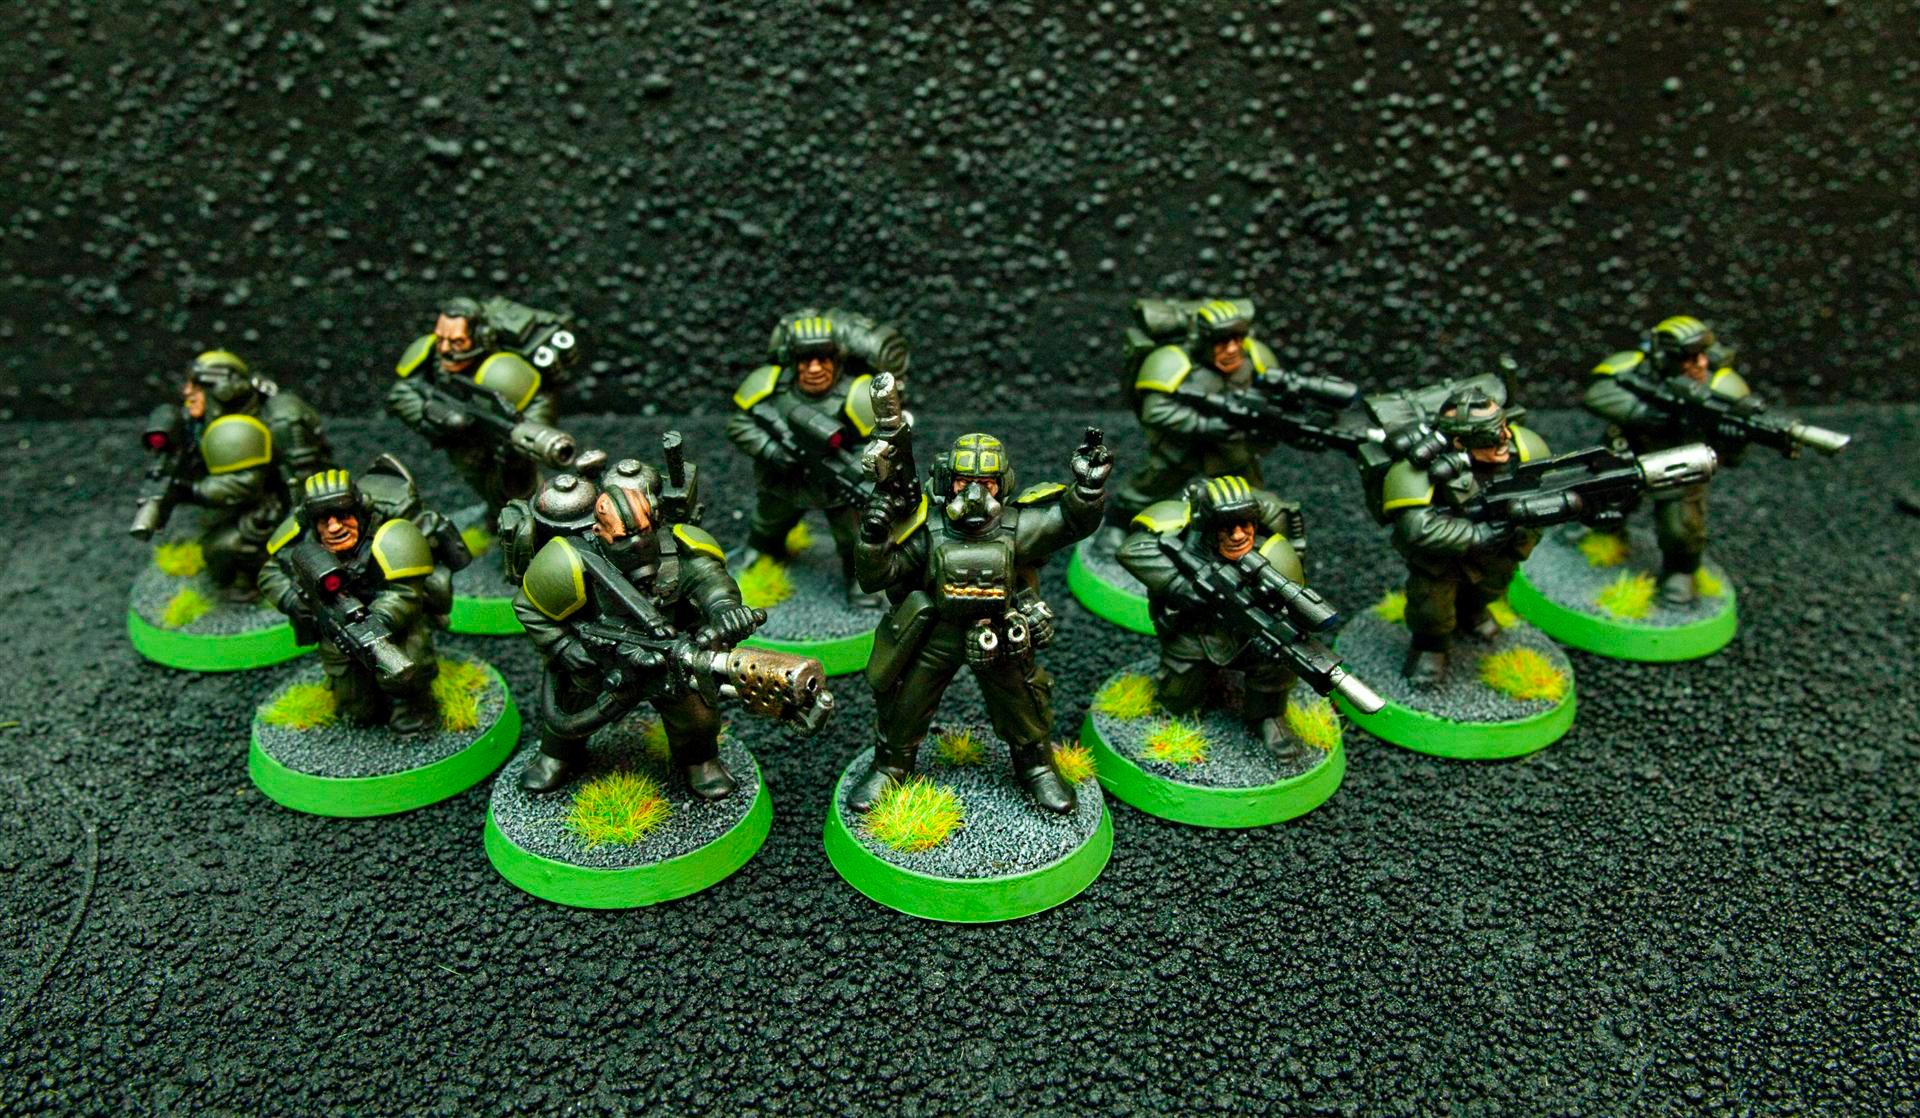 Flamer, Forward Sentries, Guard, Imperial Guard, Infiltrators, Meltagun, Meltaguns, Recon, Sgt, Verterans, Veteran, Veteran Squad